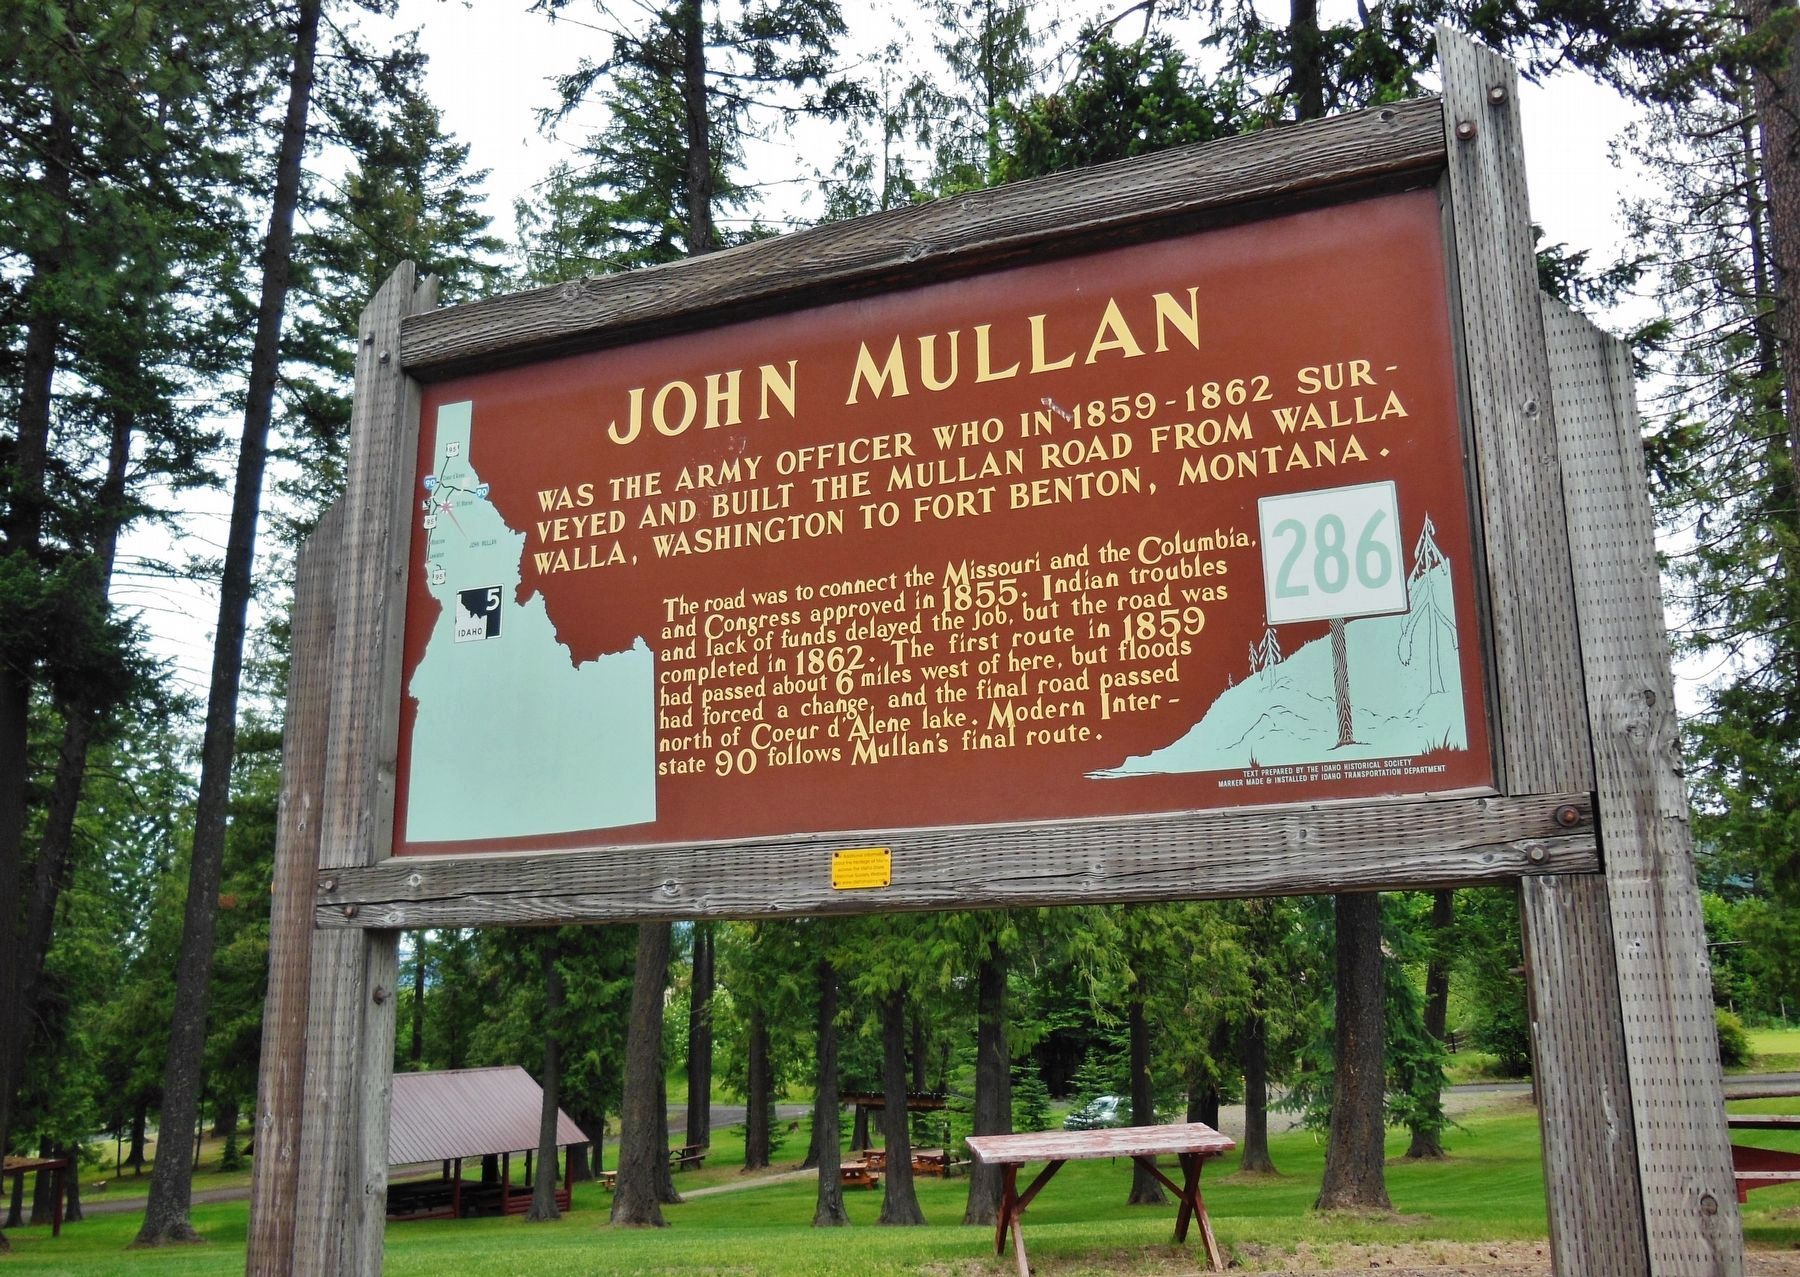 John Mullan Marker (<i>wide view showing Mullen Historical Park in background</i>) image. Click for full size.